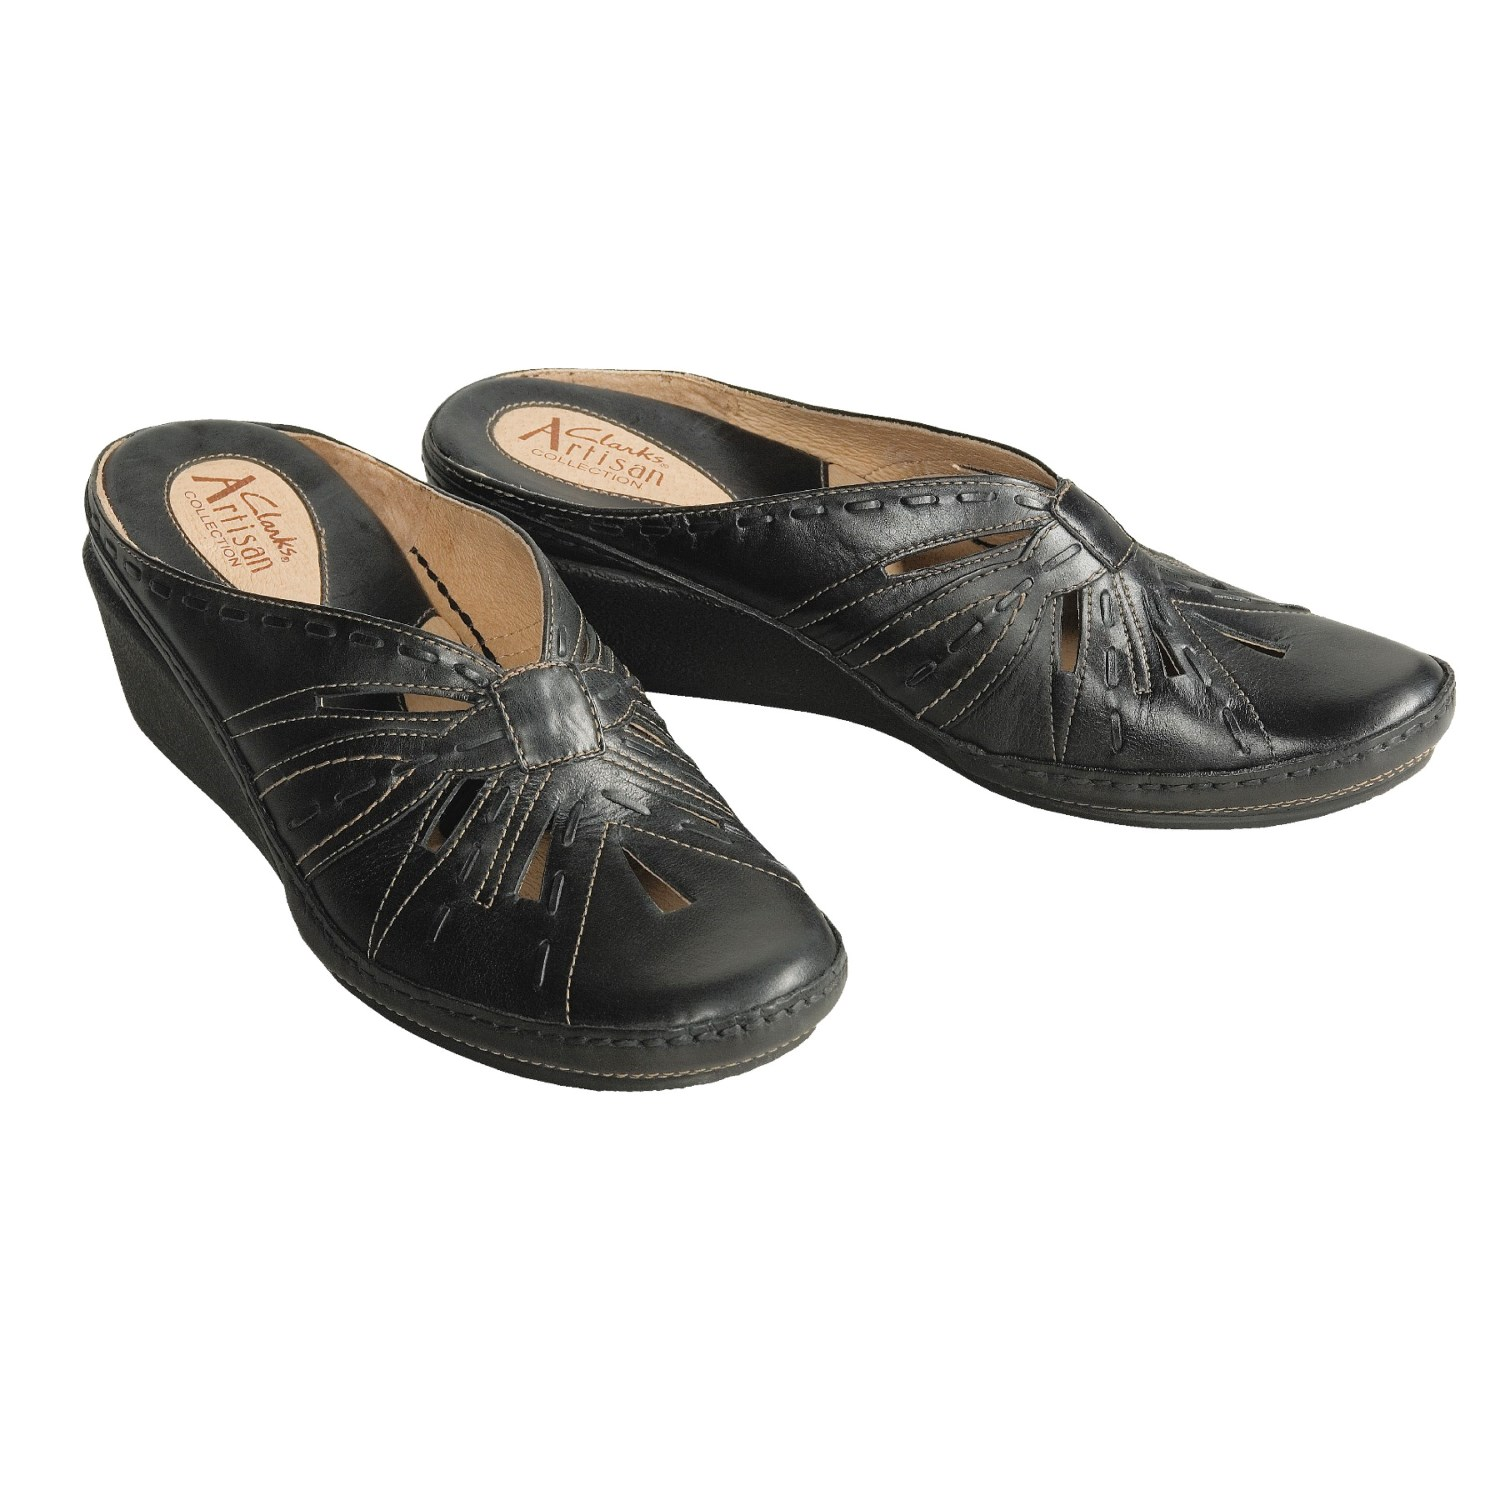 Clarks Shoes For Women Clogs